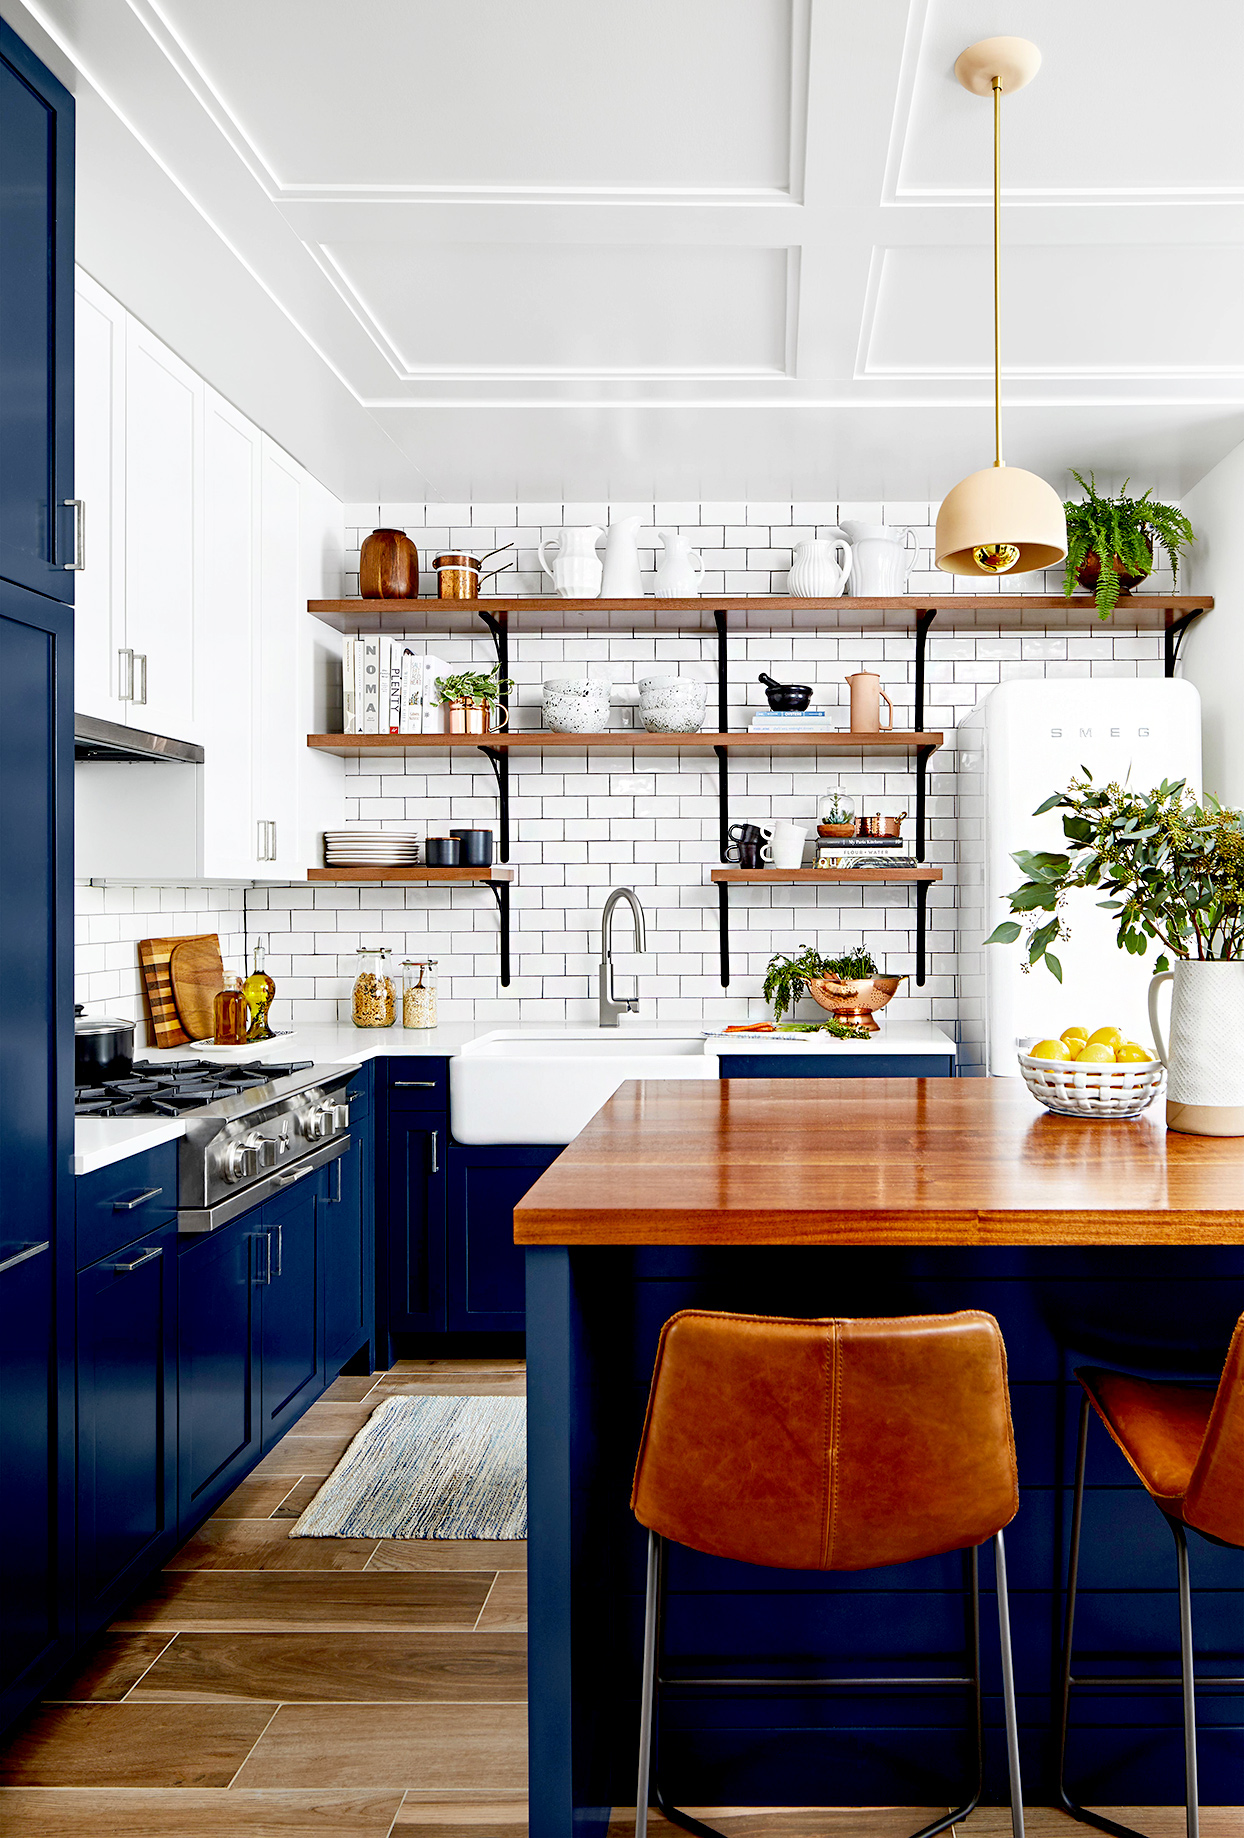 Kitchen with dark blue cabinets and wooden countertops